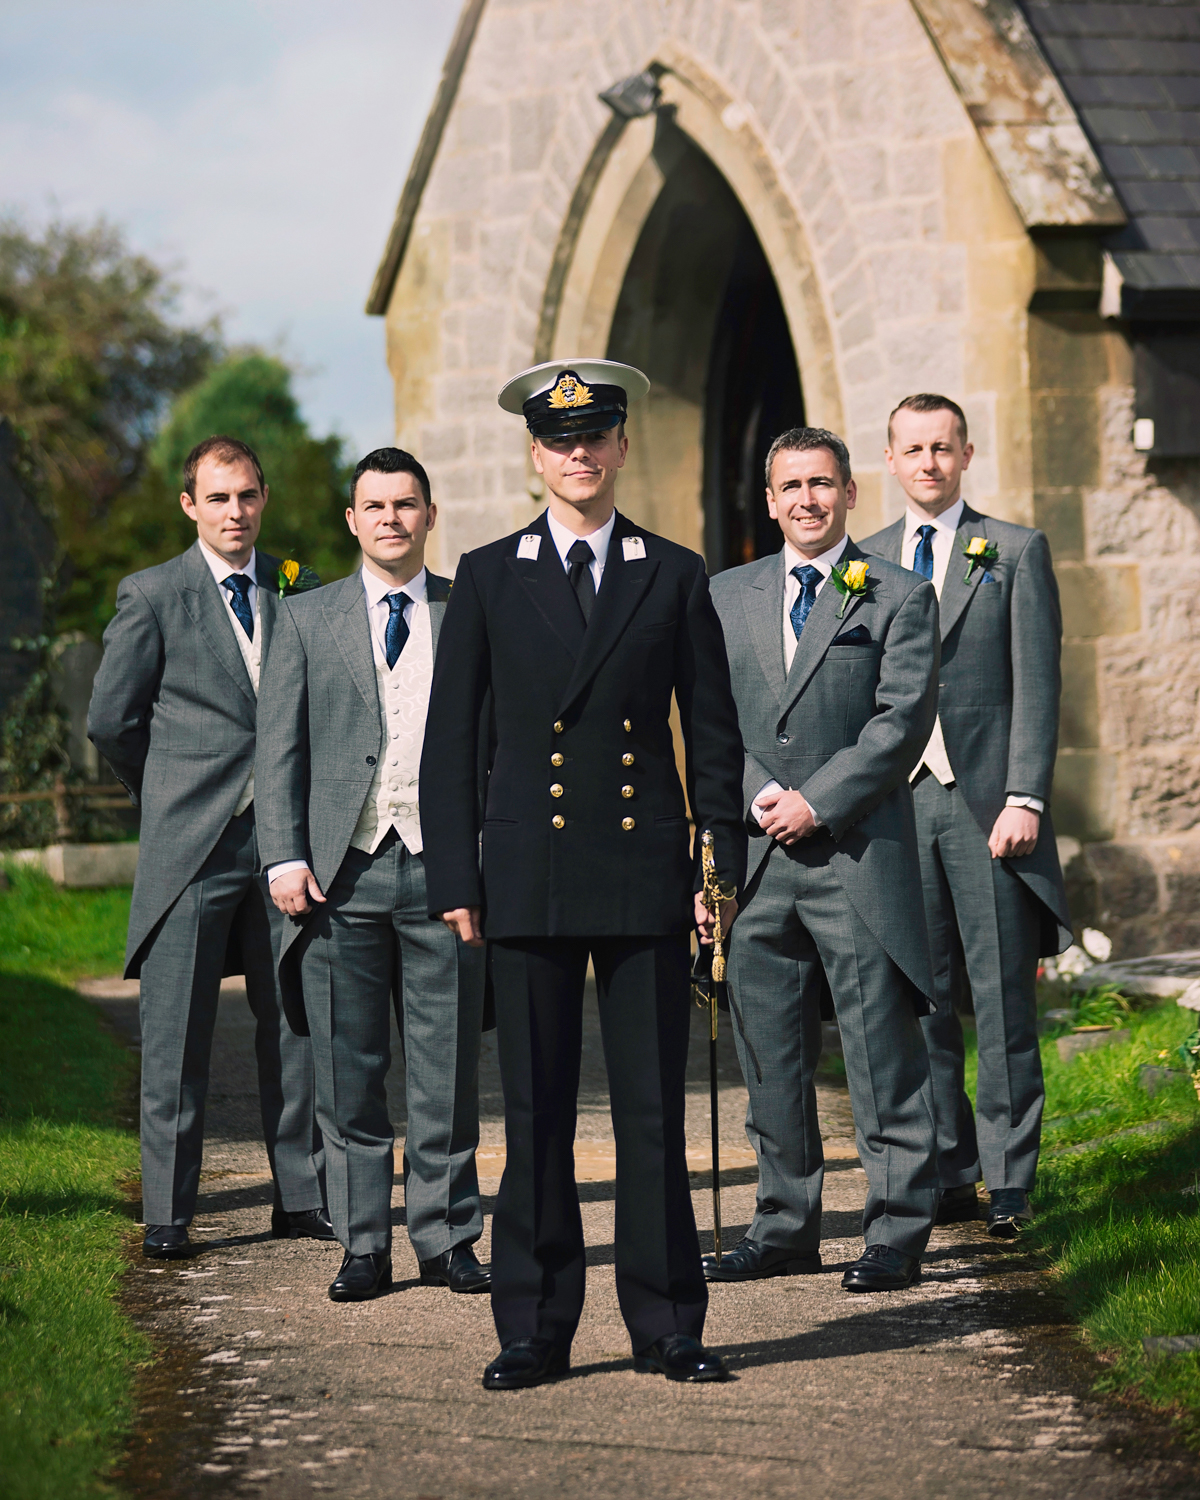 Groom and groomsmen wedding day | St Cynfran Church